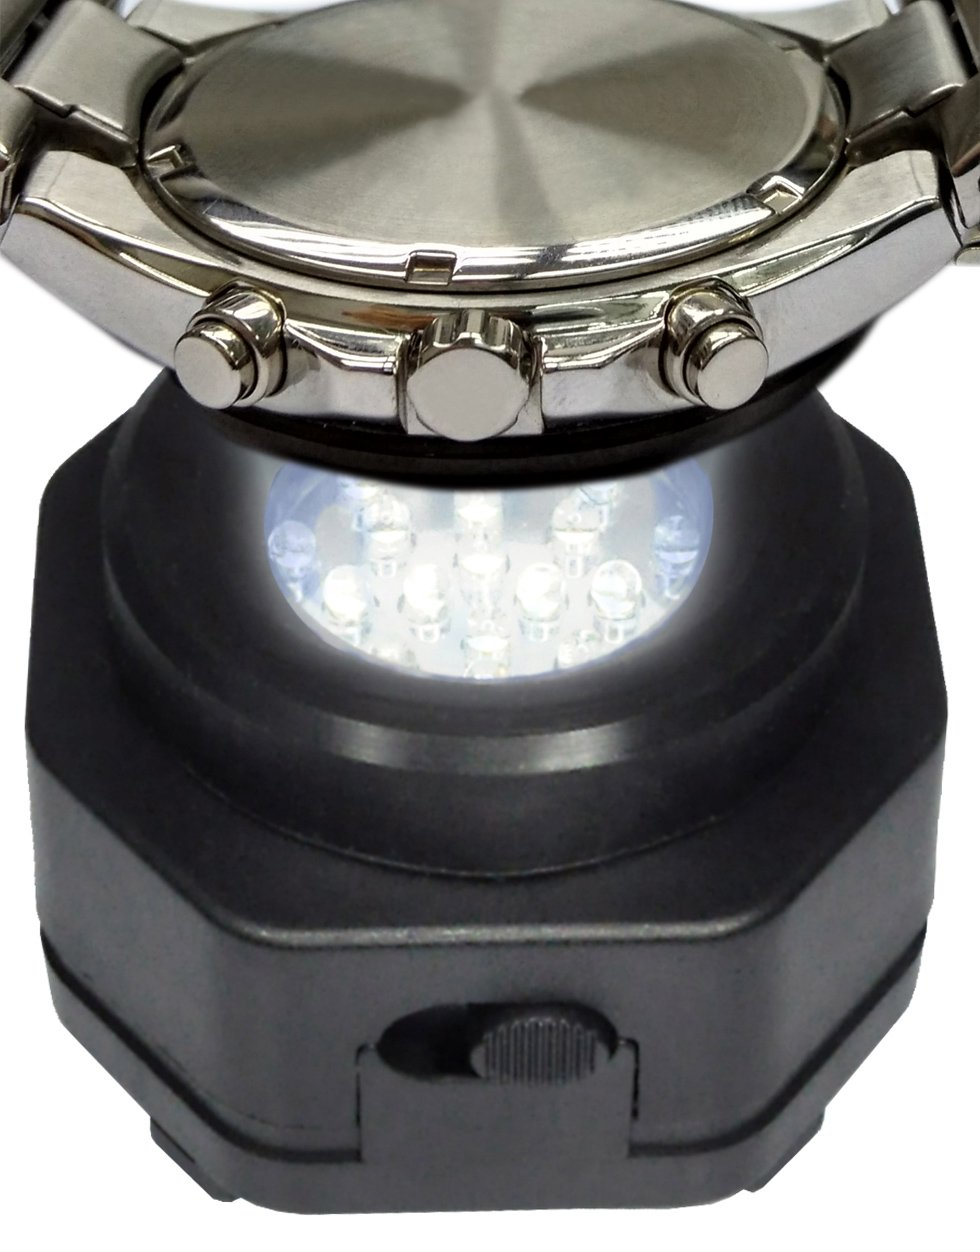 CoolFire Solar Watch Fast Charger (compatible with all kinds of eco solar watches) TC-1046 by TIMECHANT